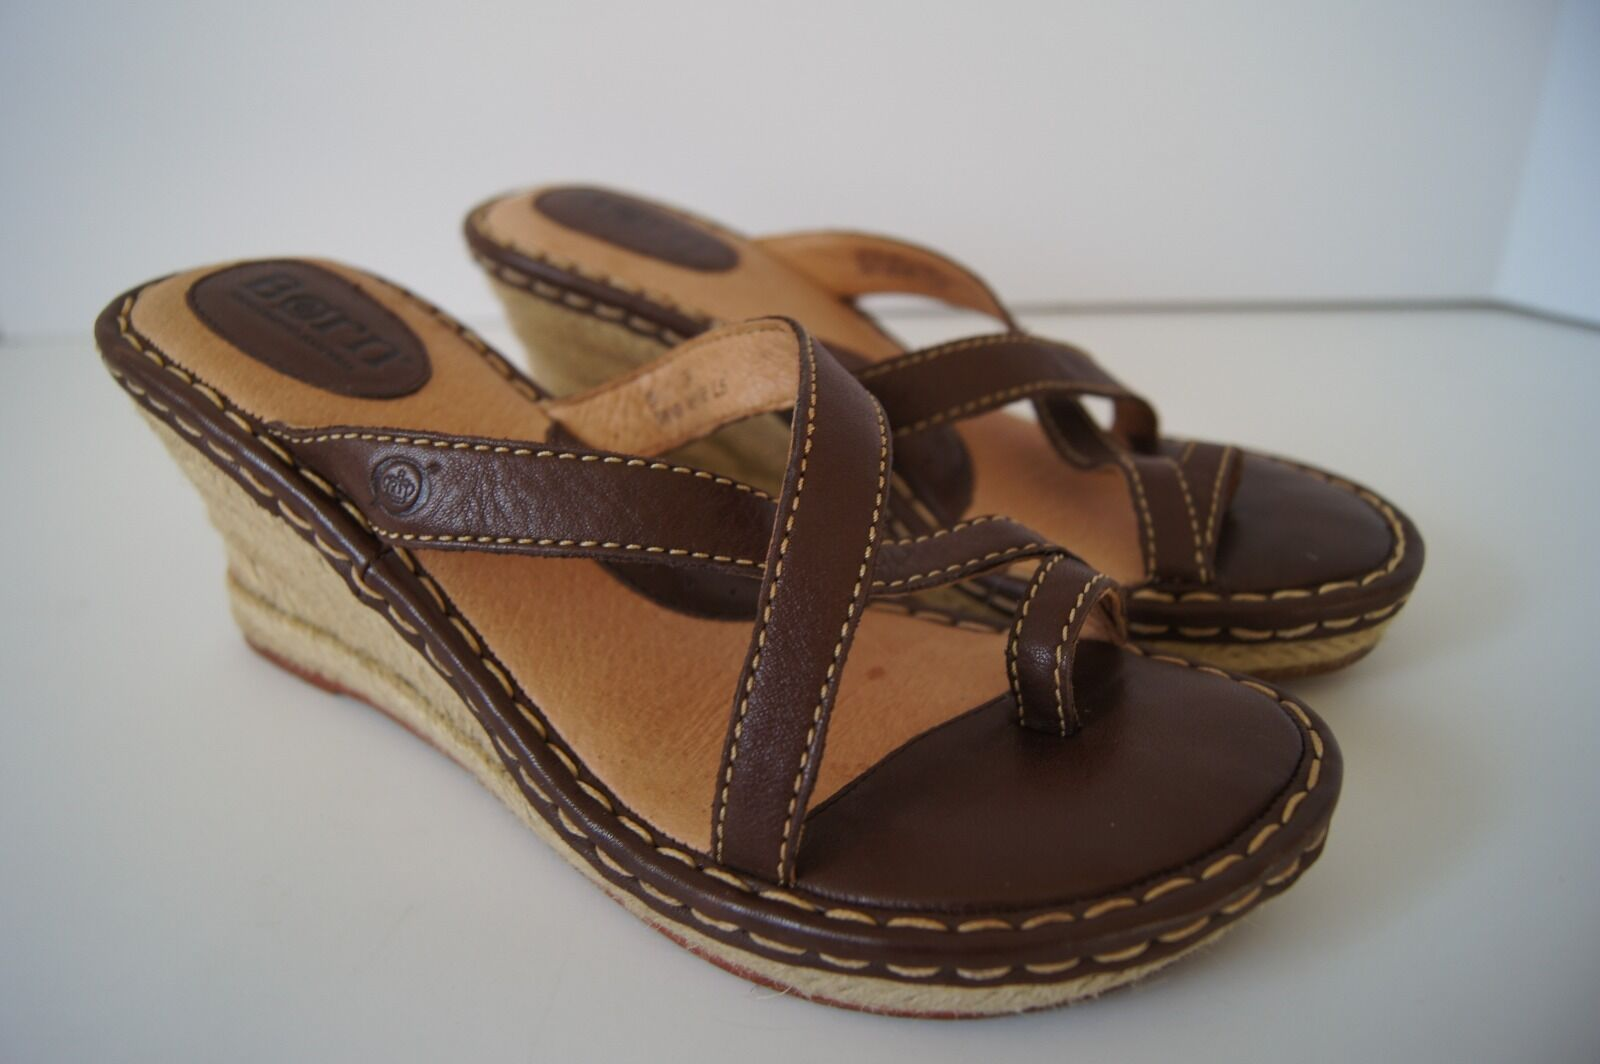 BORN Brown Leather Leather Leather Platform Wedge Sandals Size 8 39 e5319e